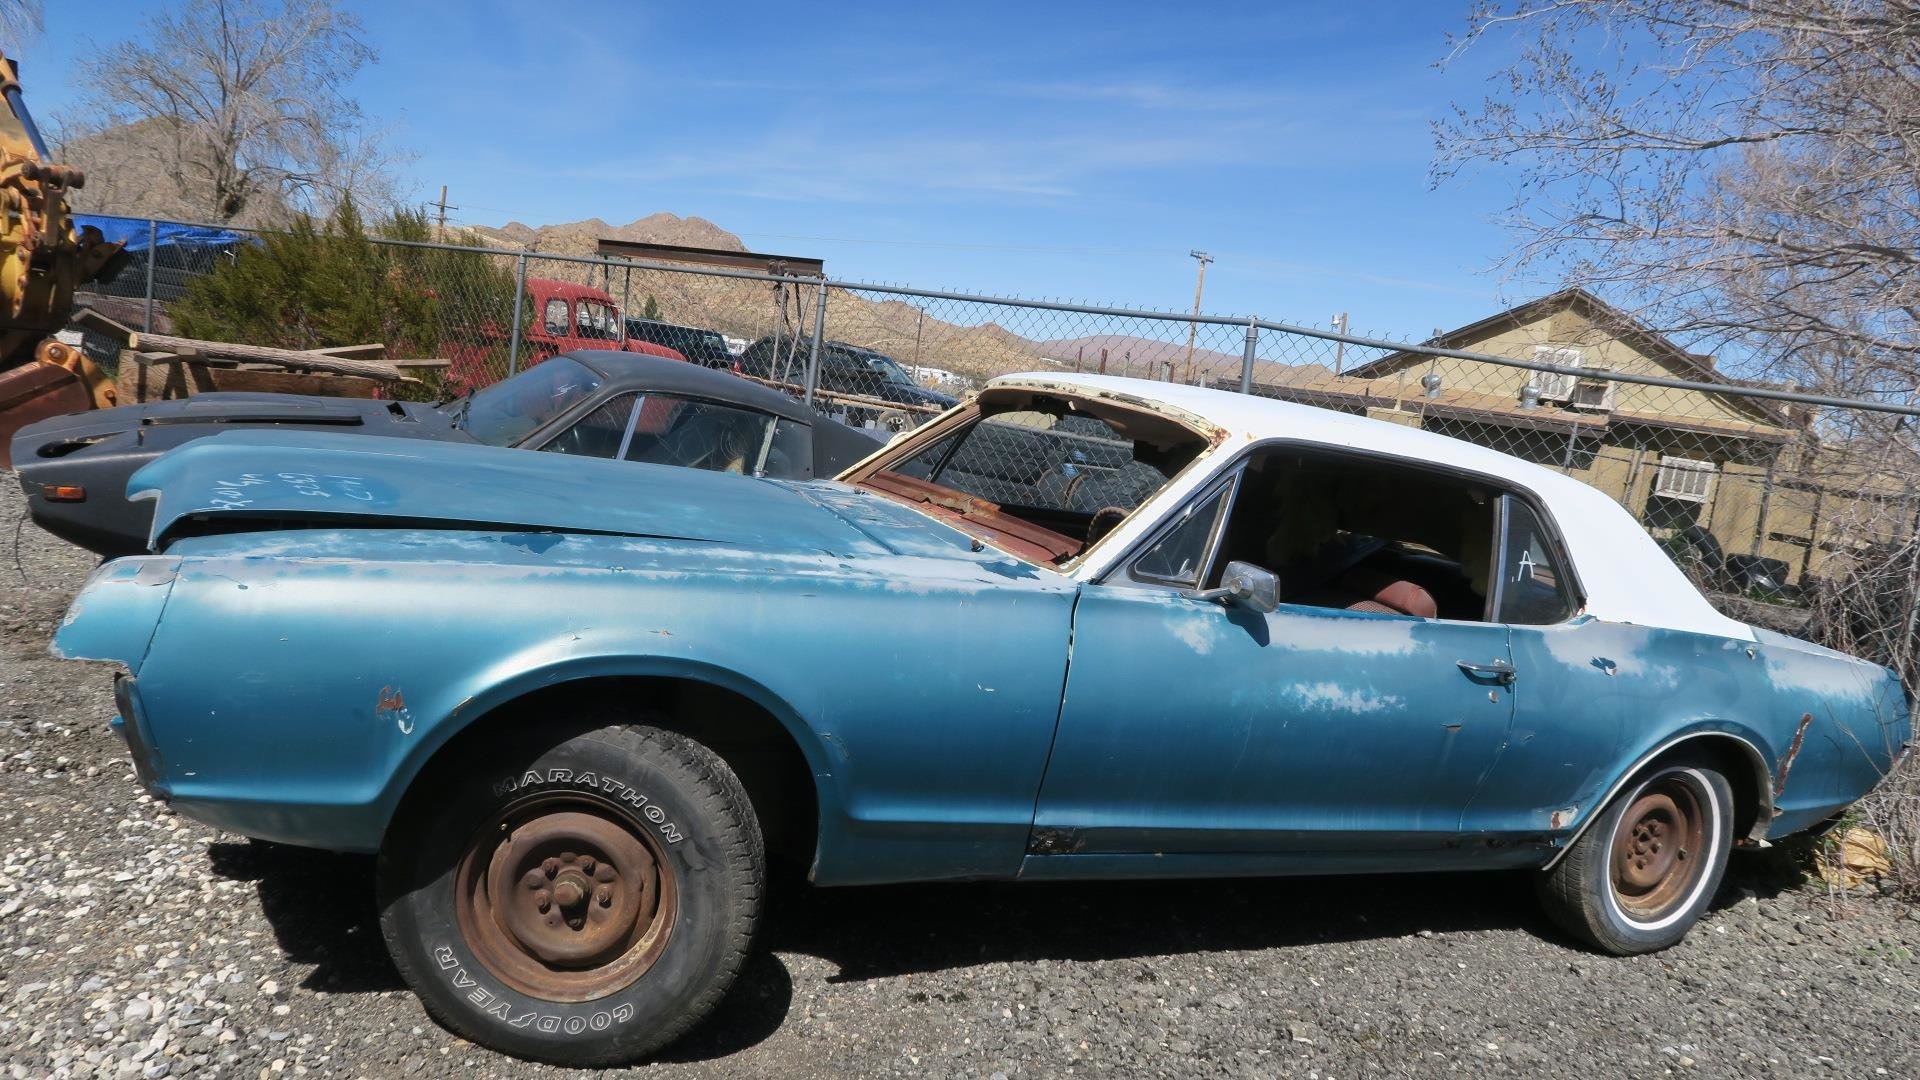 1967 Mercury Cougar 289 C Code Auto Project Blue  $1.9k For Sale (picture 1 of 6)